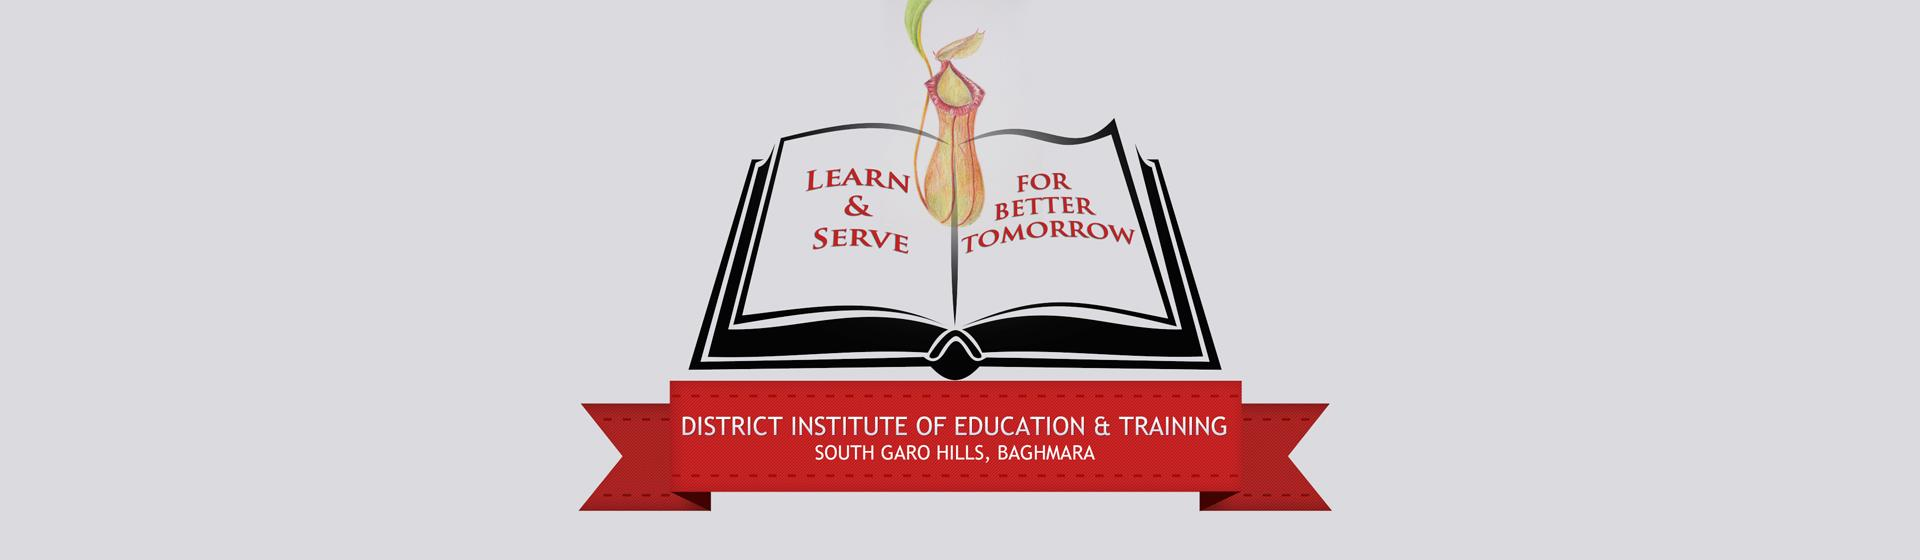 District Institute of Education and Training Banner Image